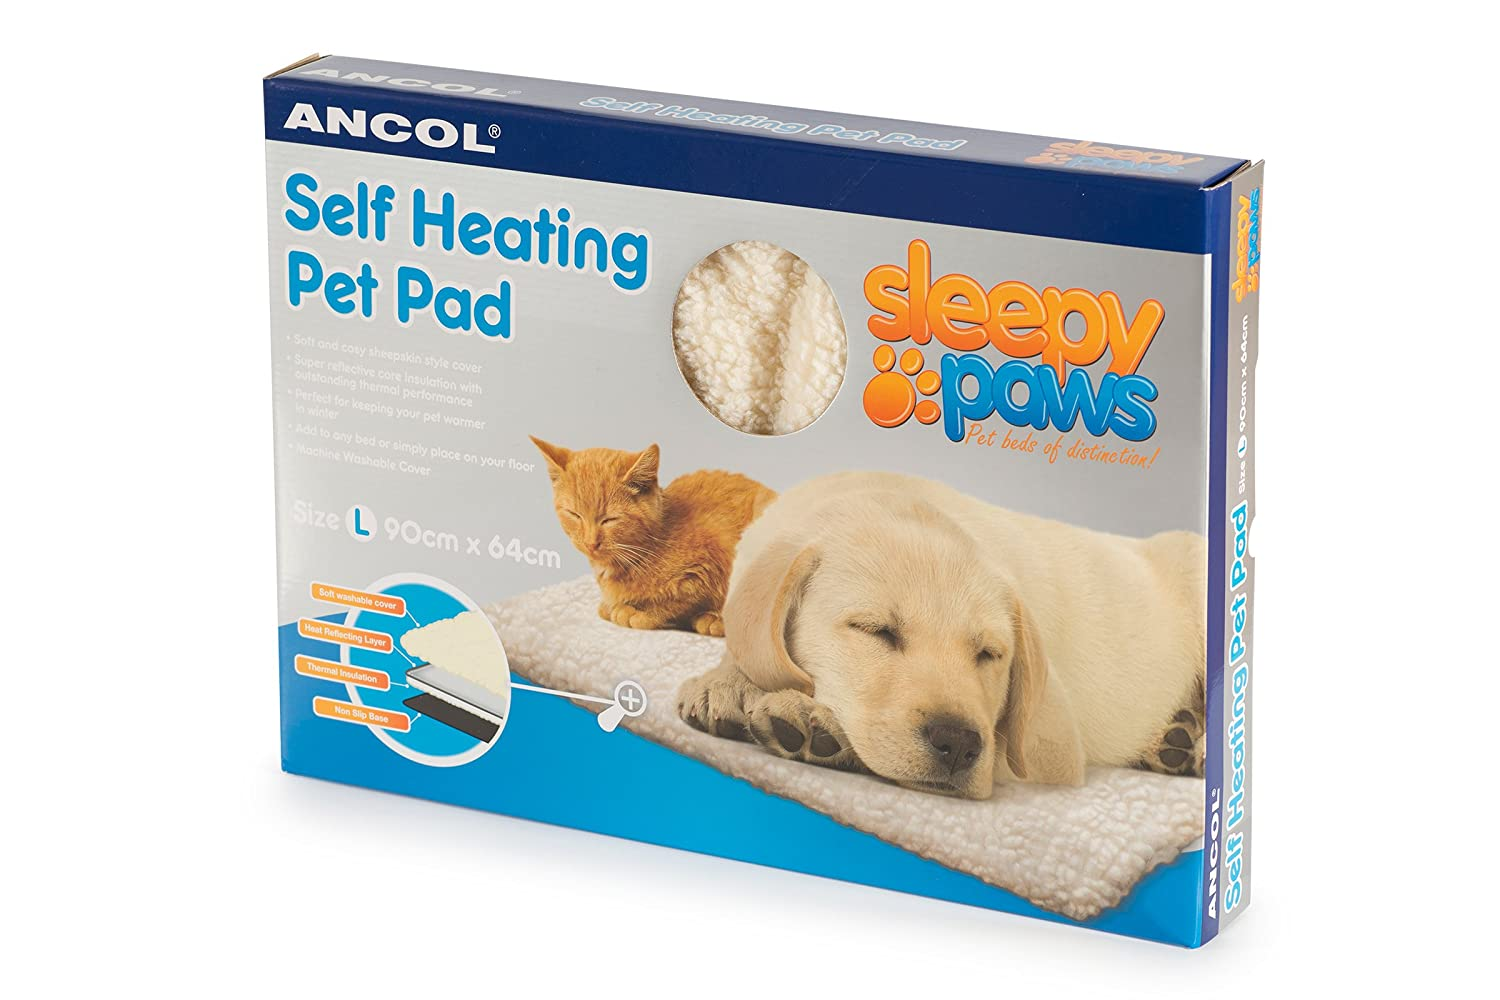 Ancol Self Heating Pet Pad Cat Dog Bed Large